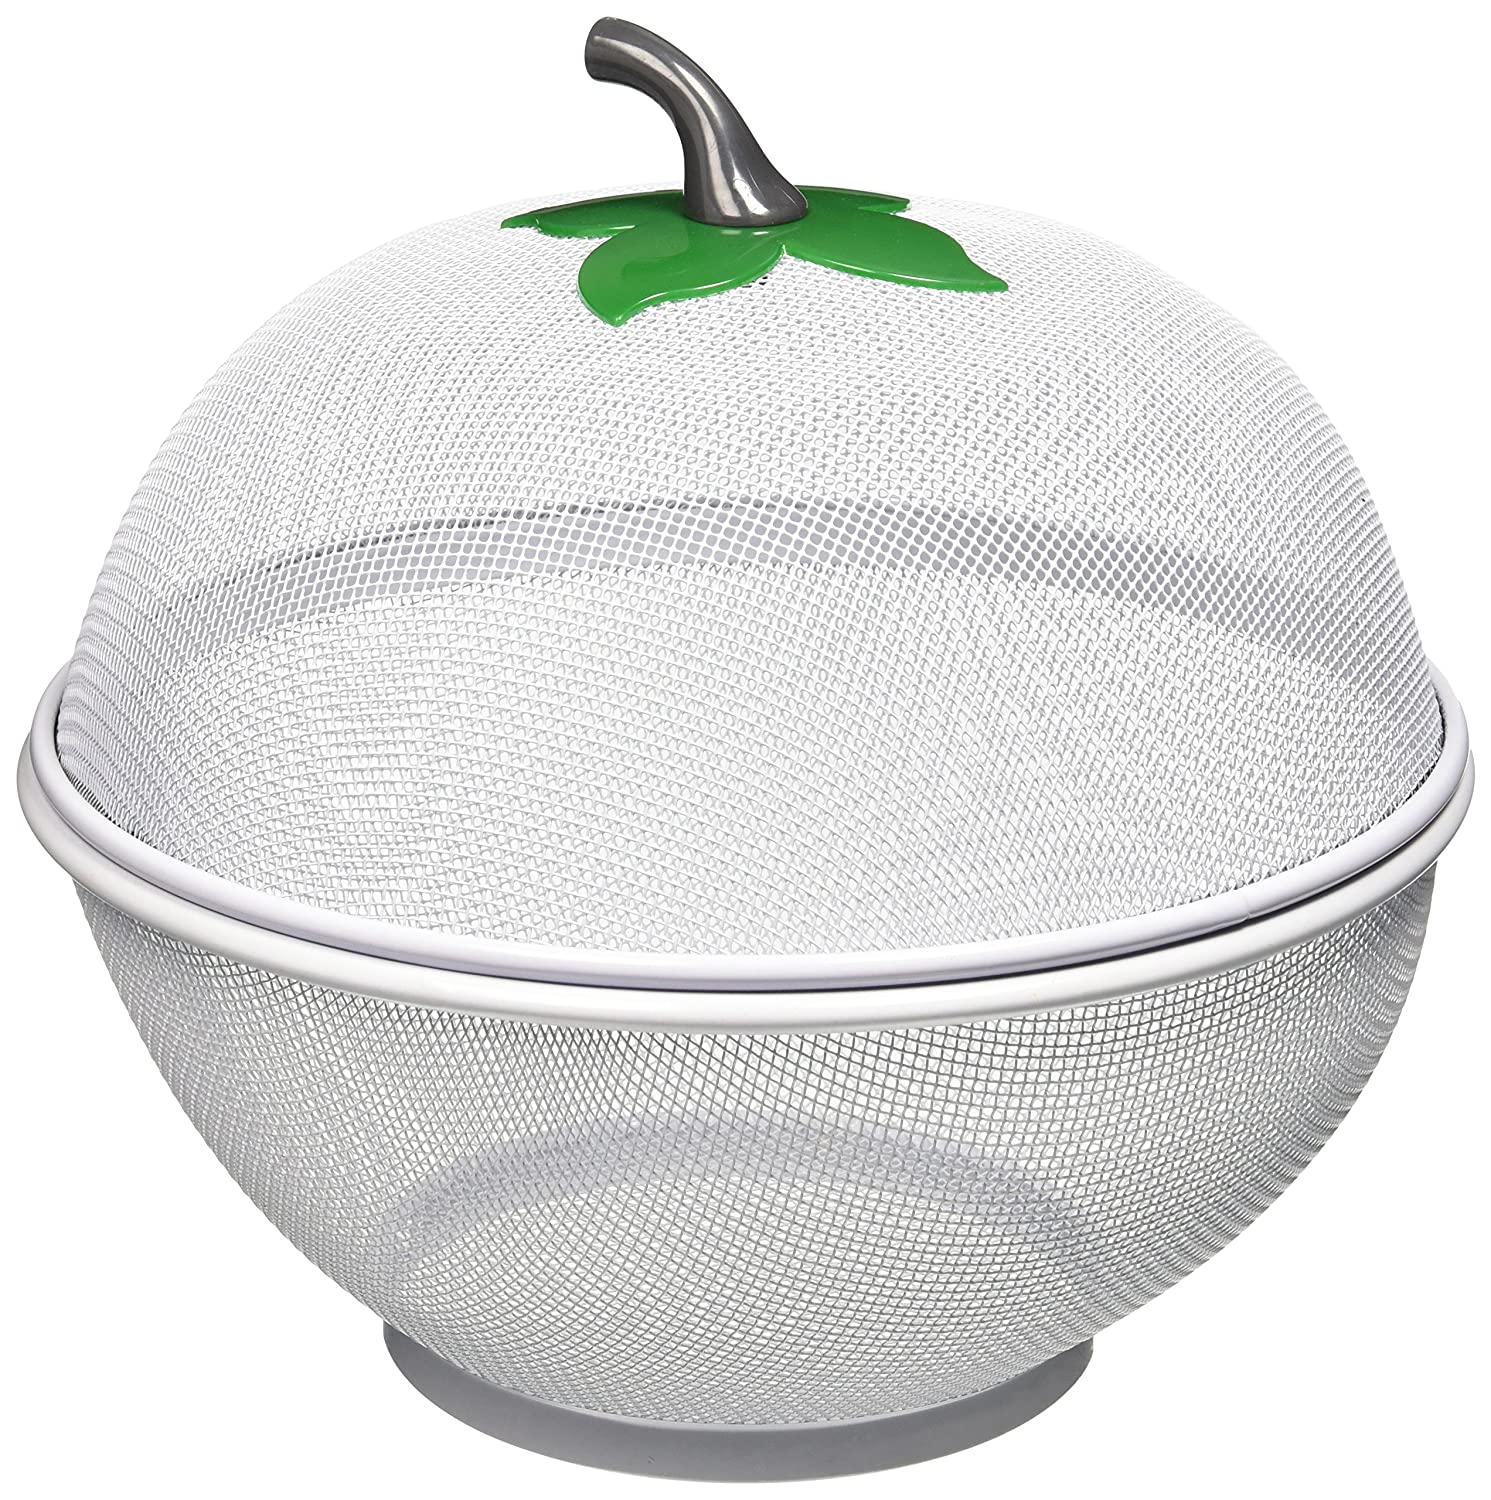 Uniware® Apple Net Fruit Basket with plastic Coating, 10.5 Inch, Silver 2203